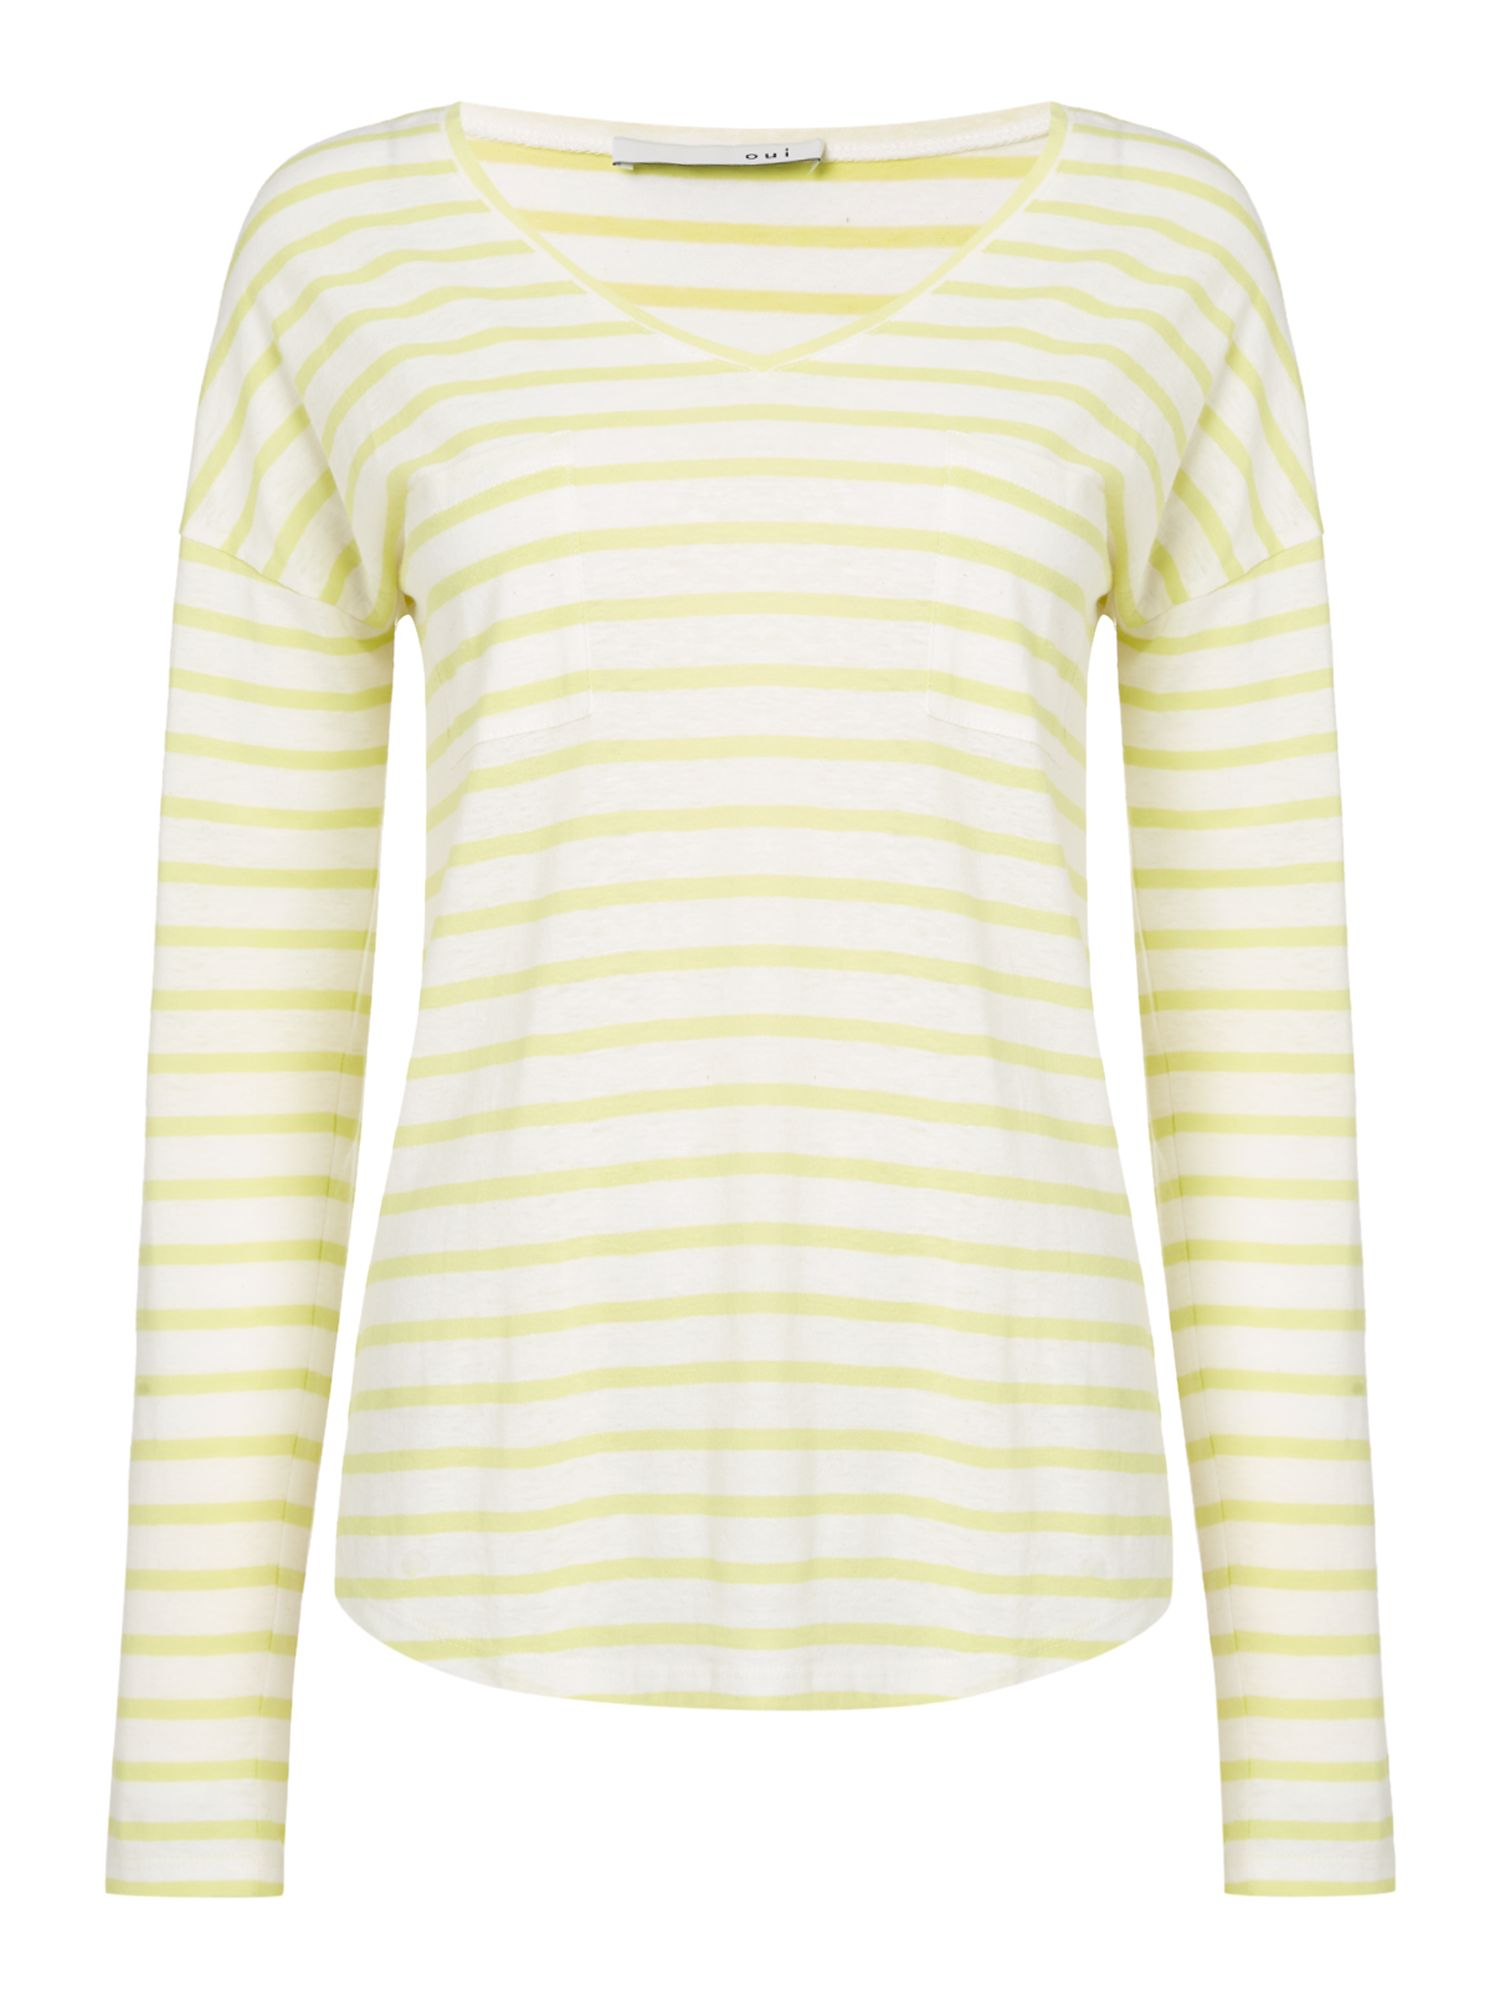 Oui Stripe t-shirt with pocket, Yellow